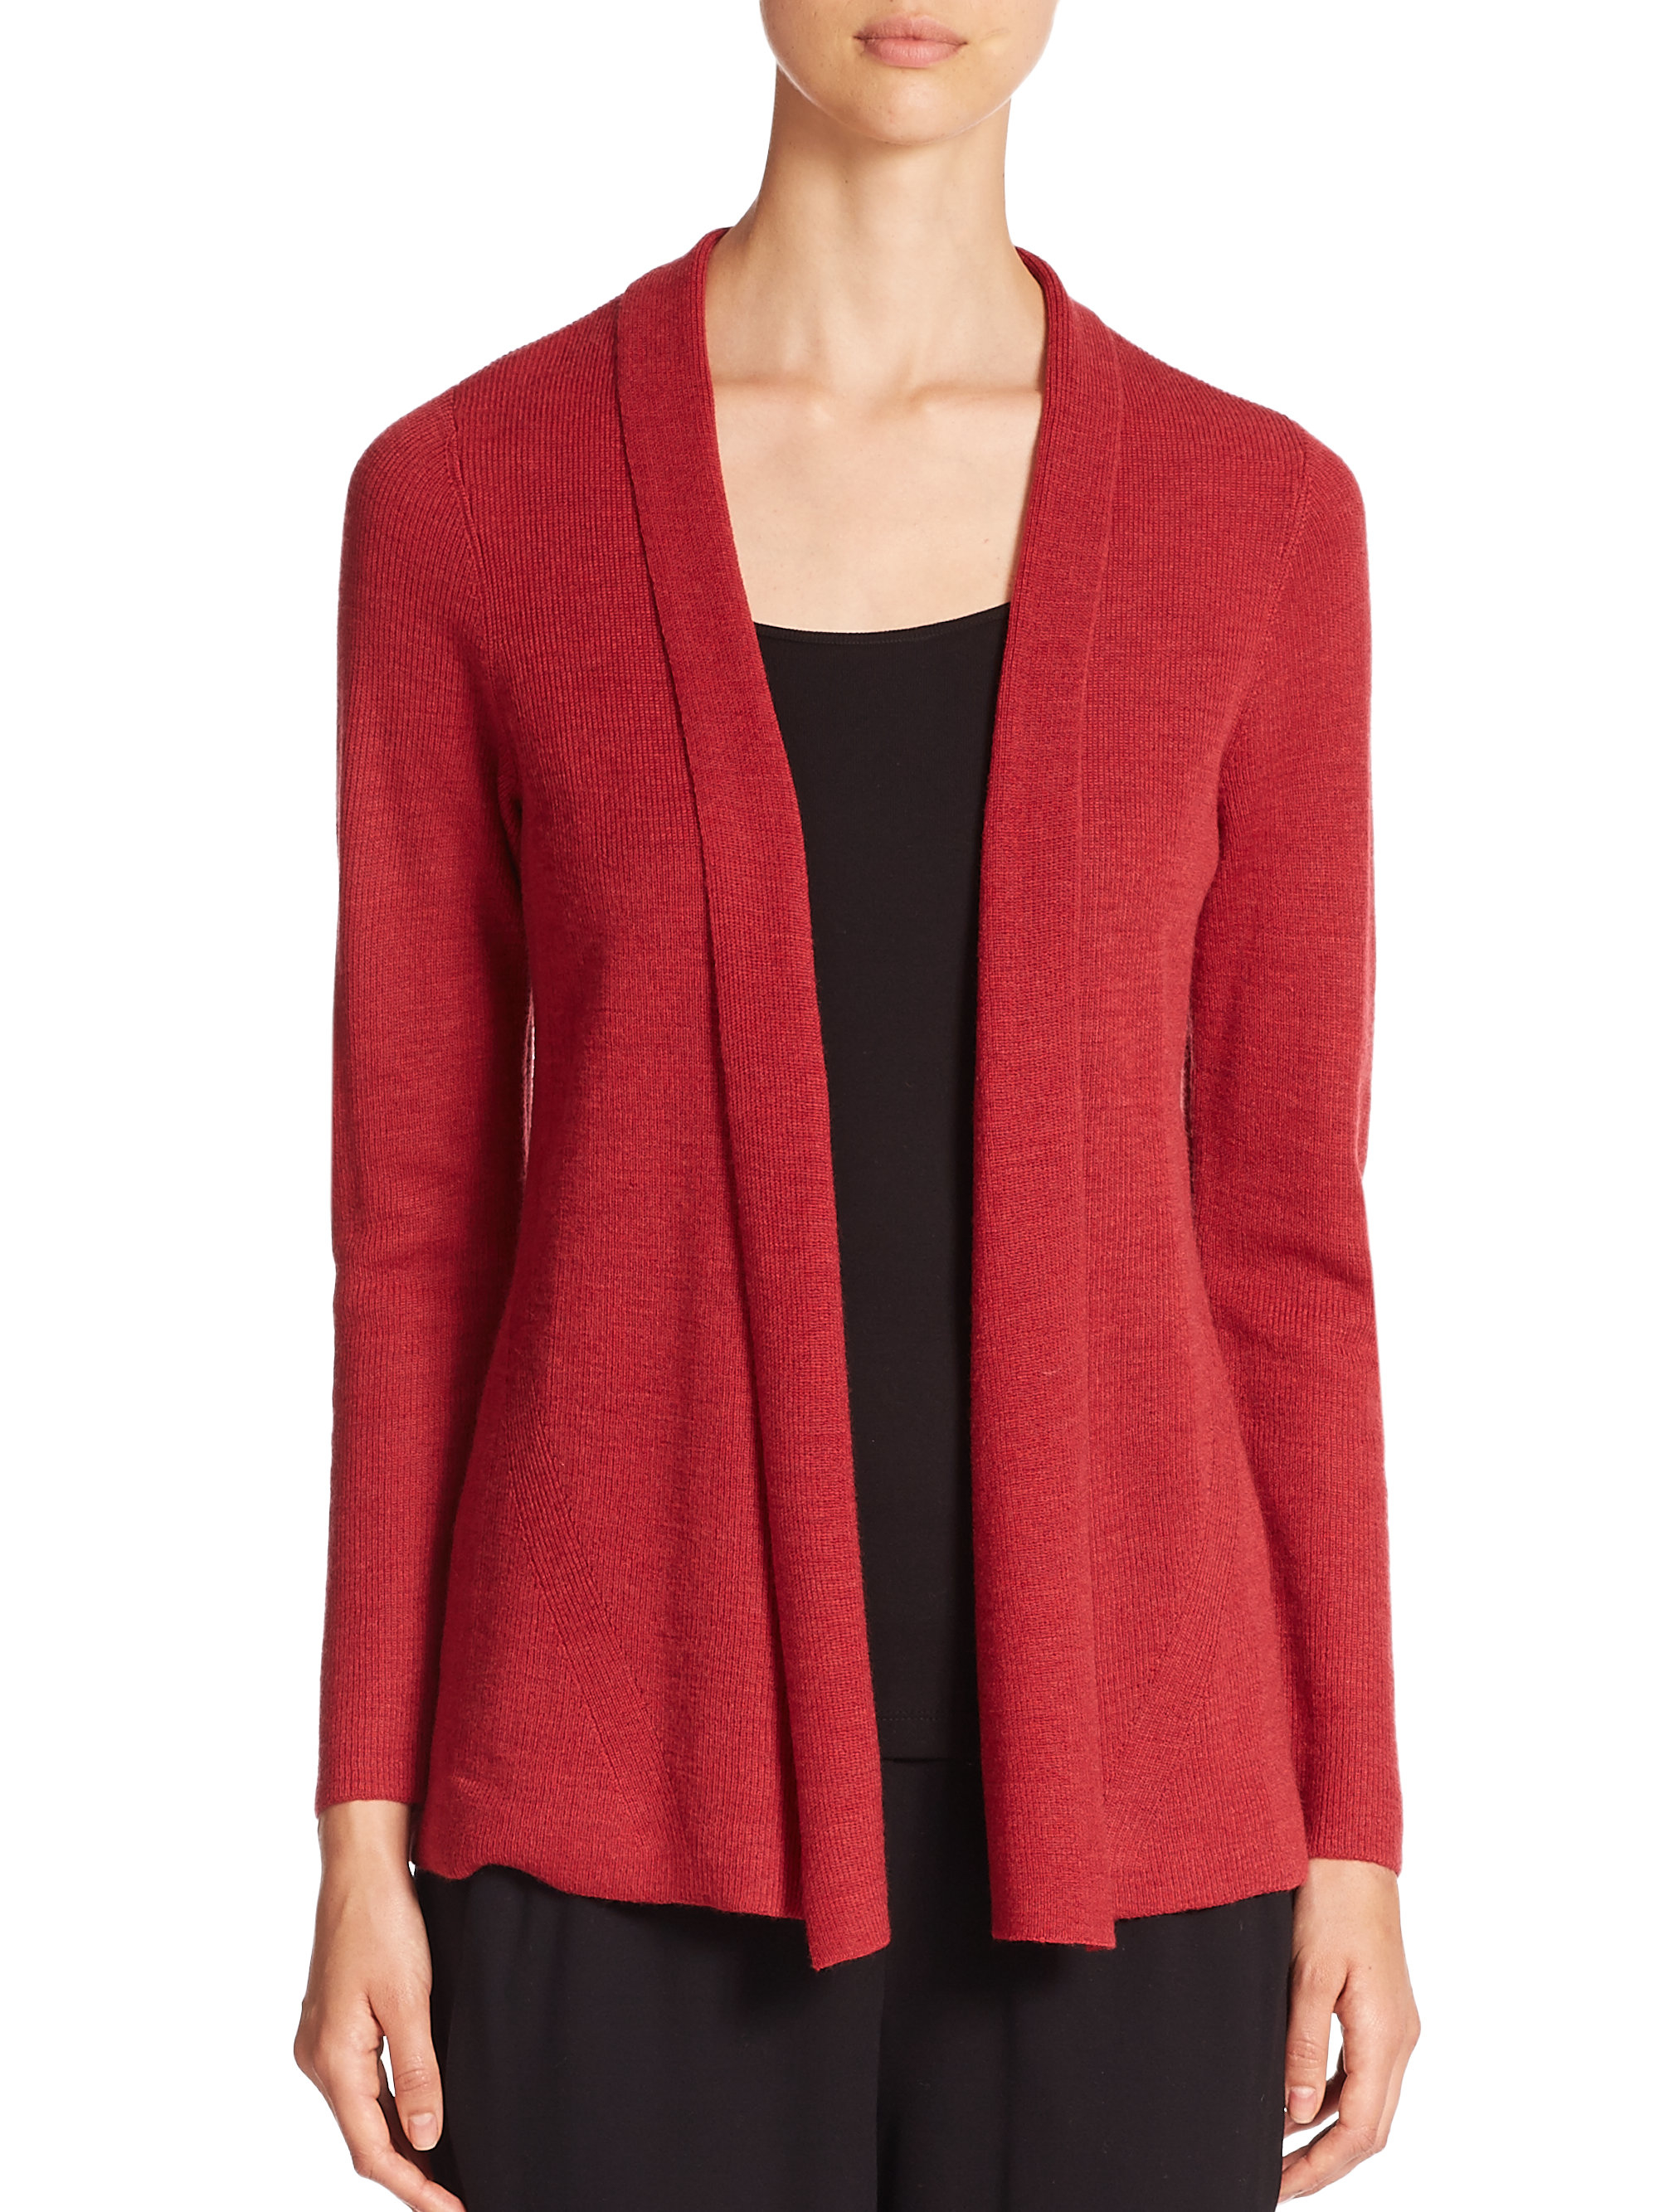 Red Wool Cardigan | Tulips Clothing